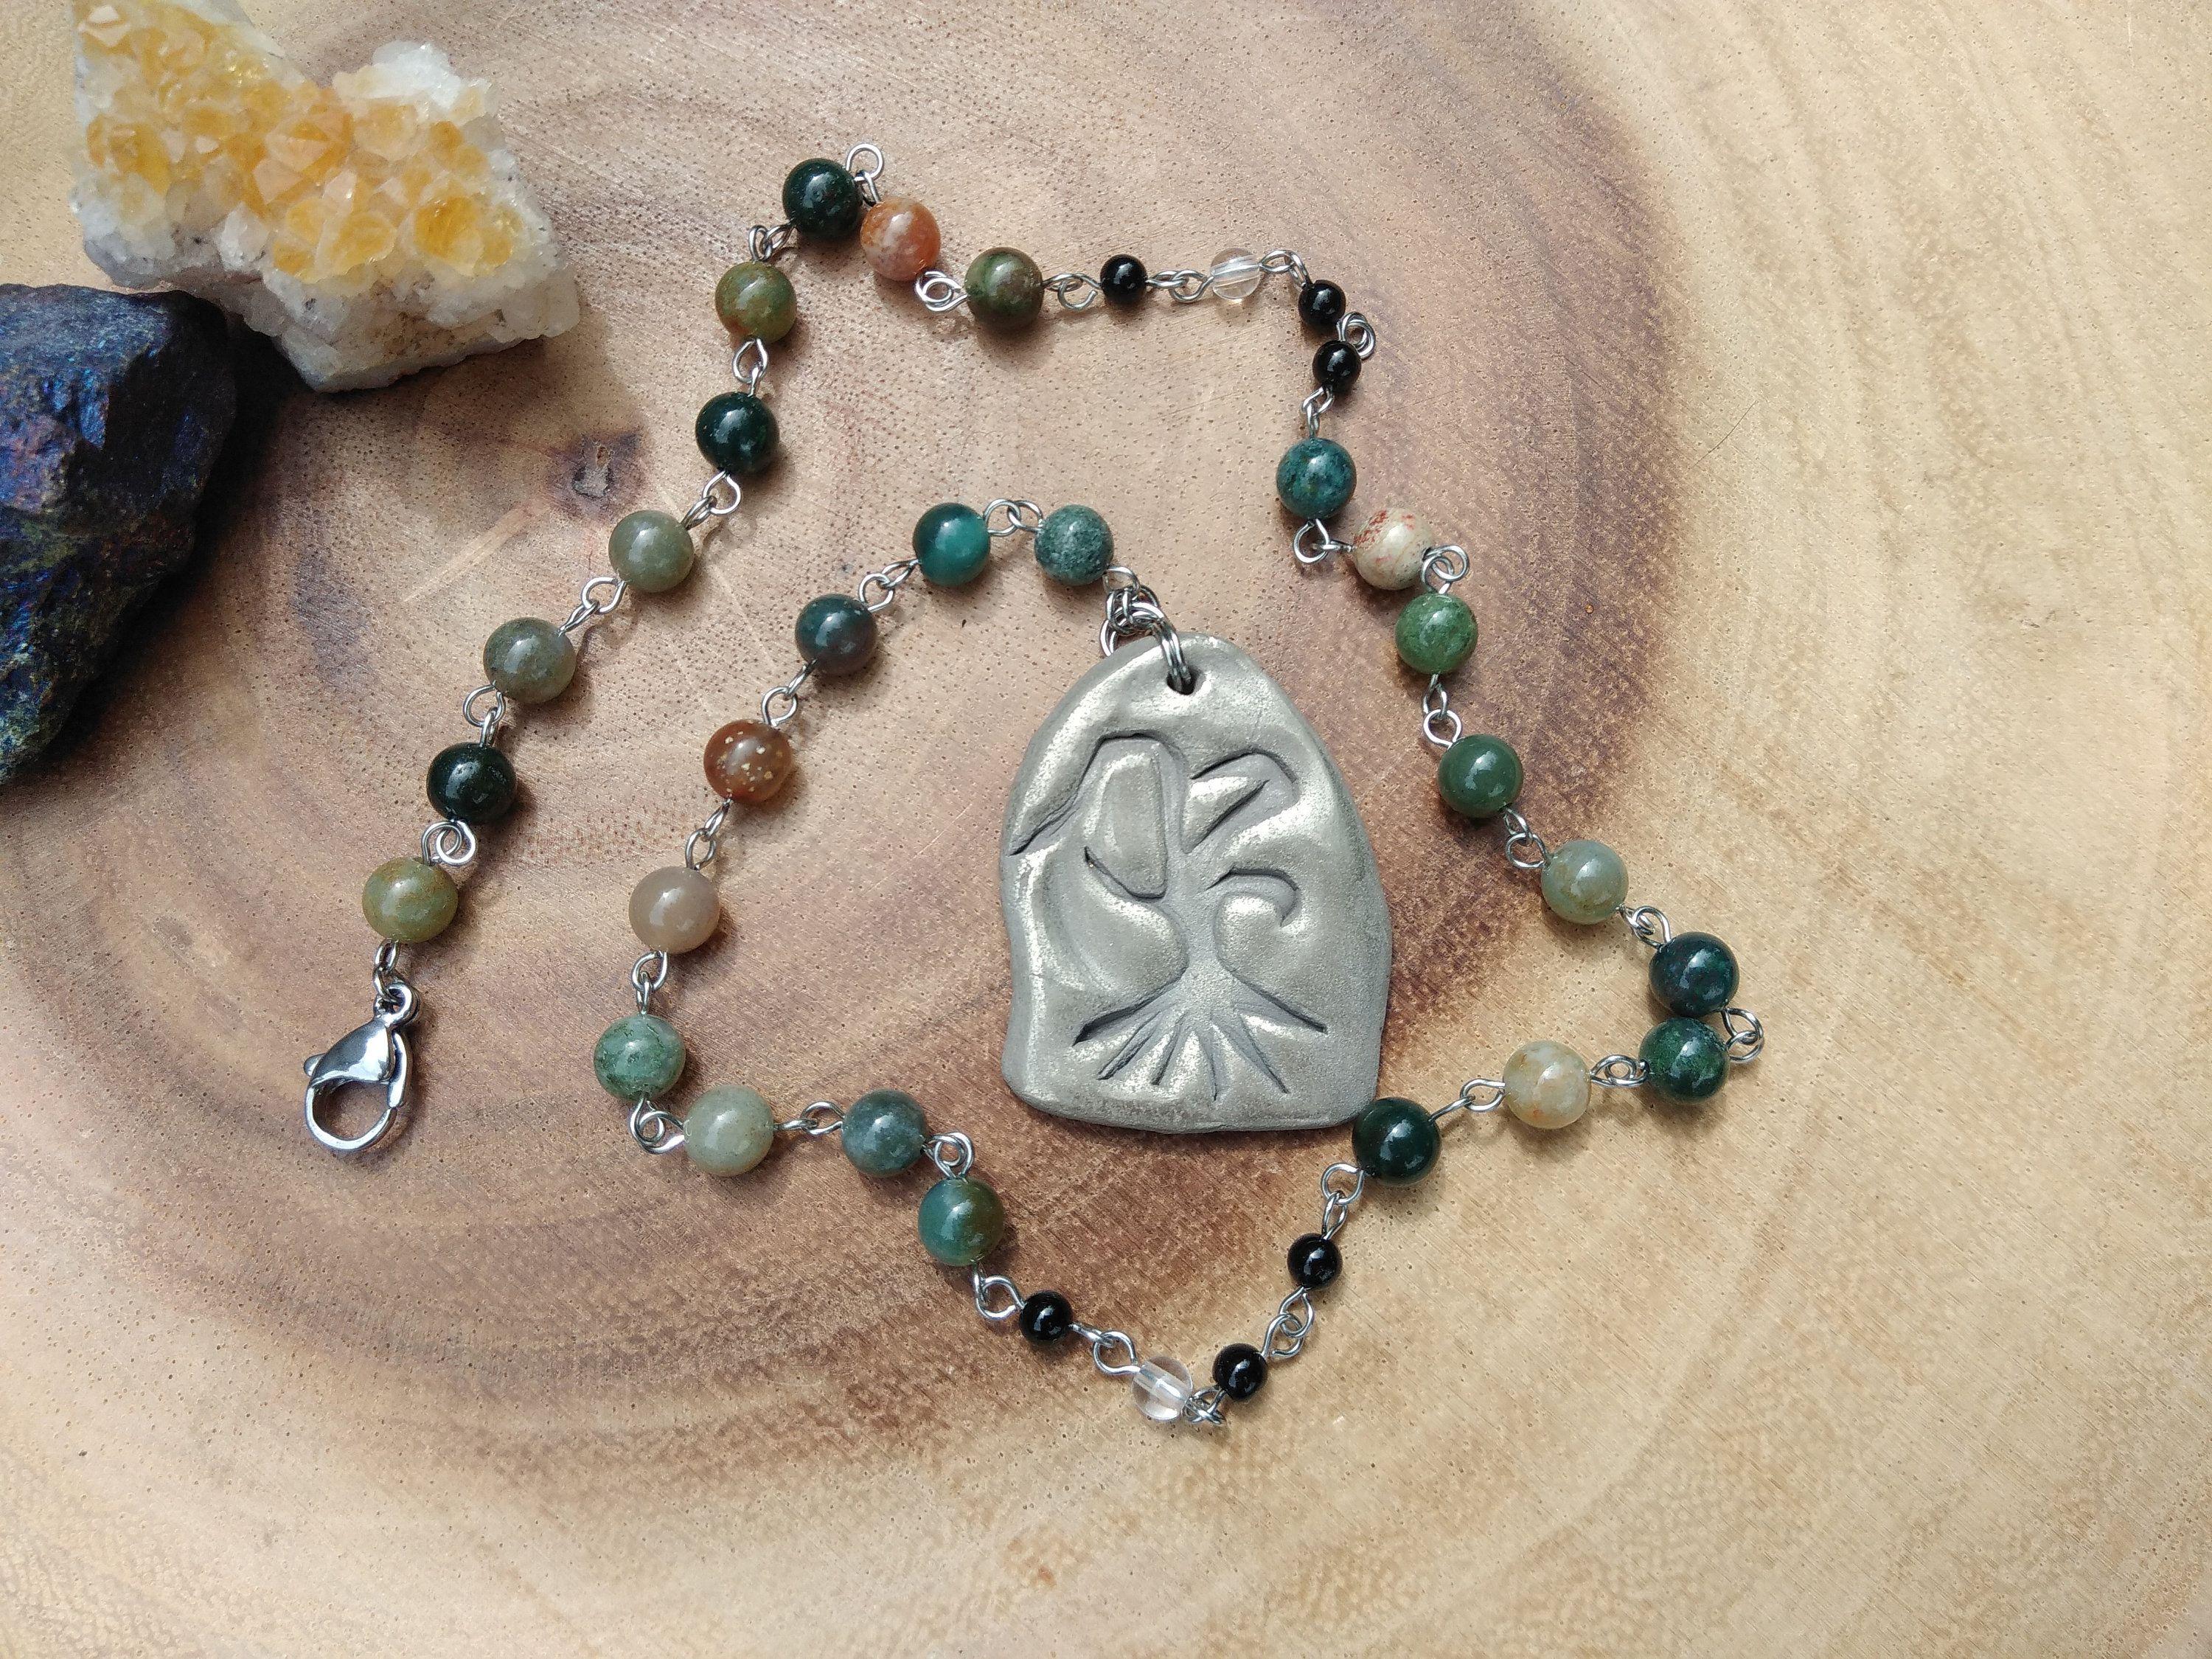 Rooted Tree pagan prayer beads, Indian agate druid rosary